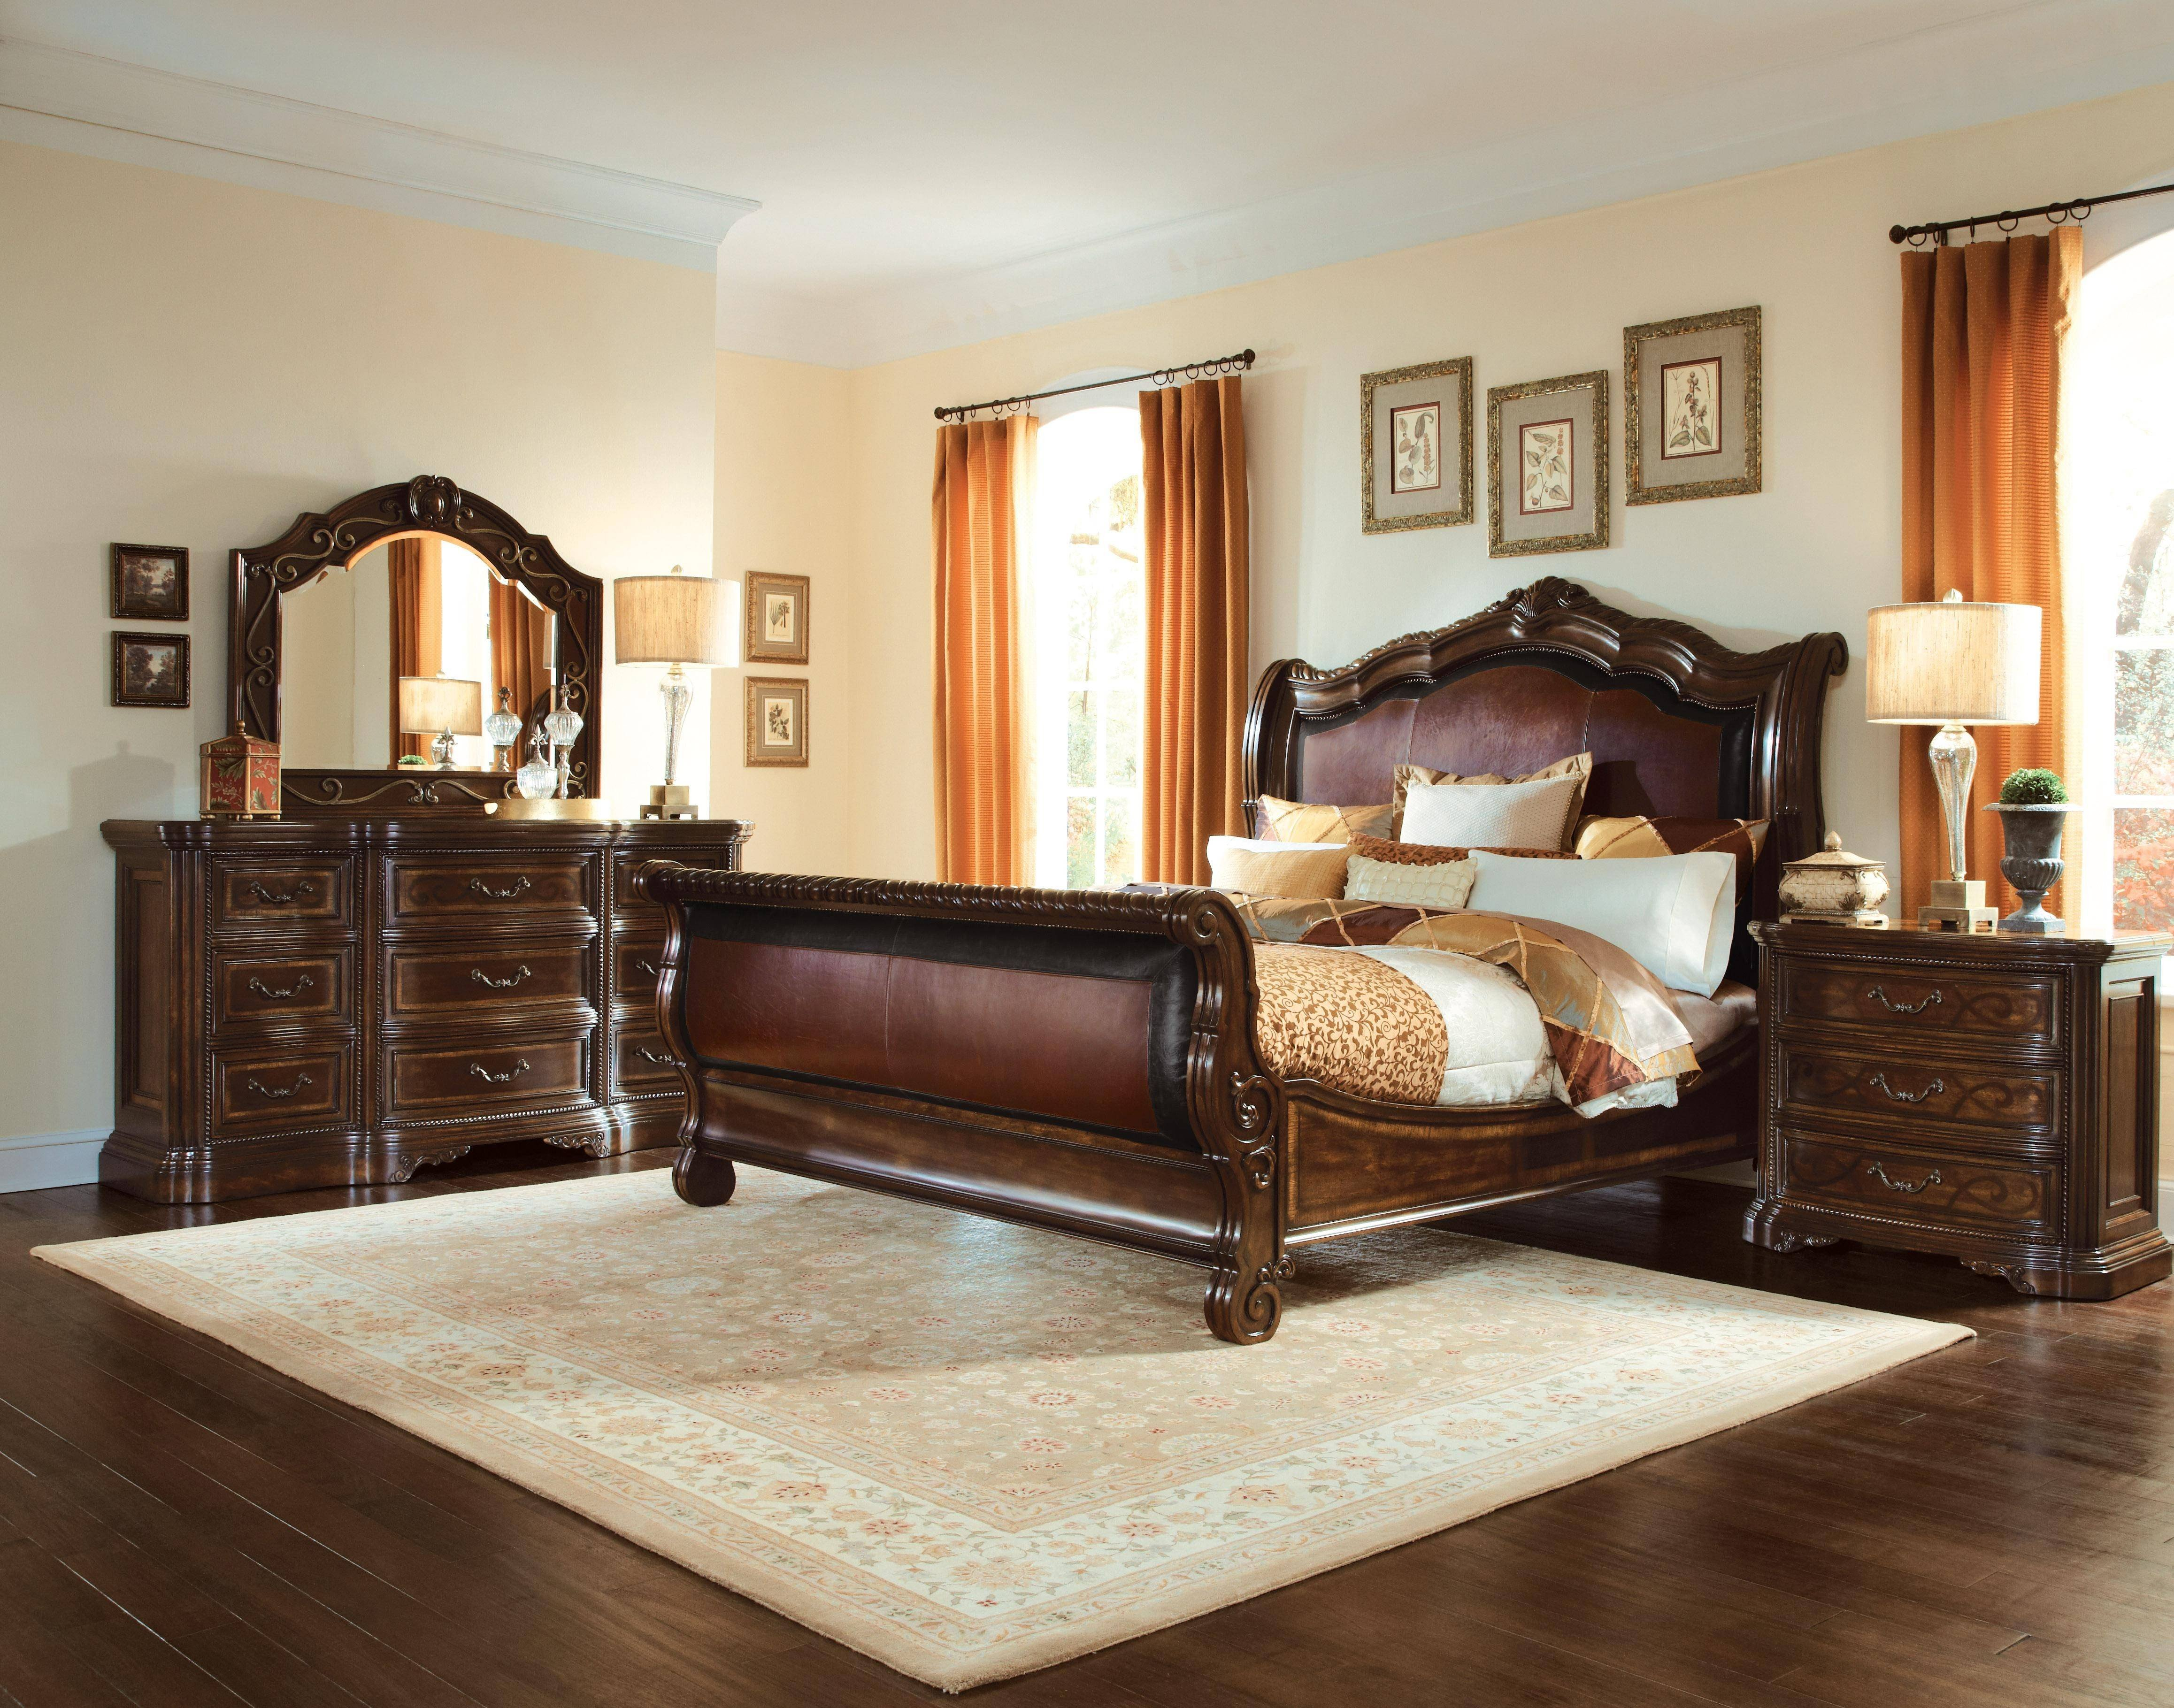 Oak King Bedroom Set New Traditional Dark Oak Faux Leather King Sleigh Bed Valencia A R T